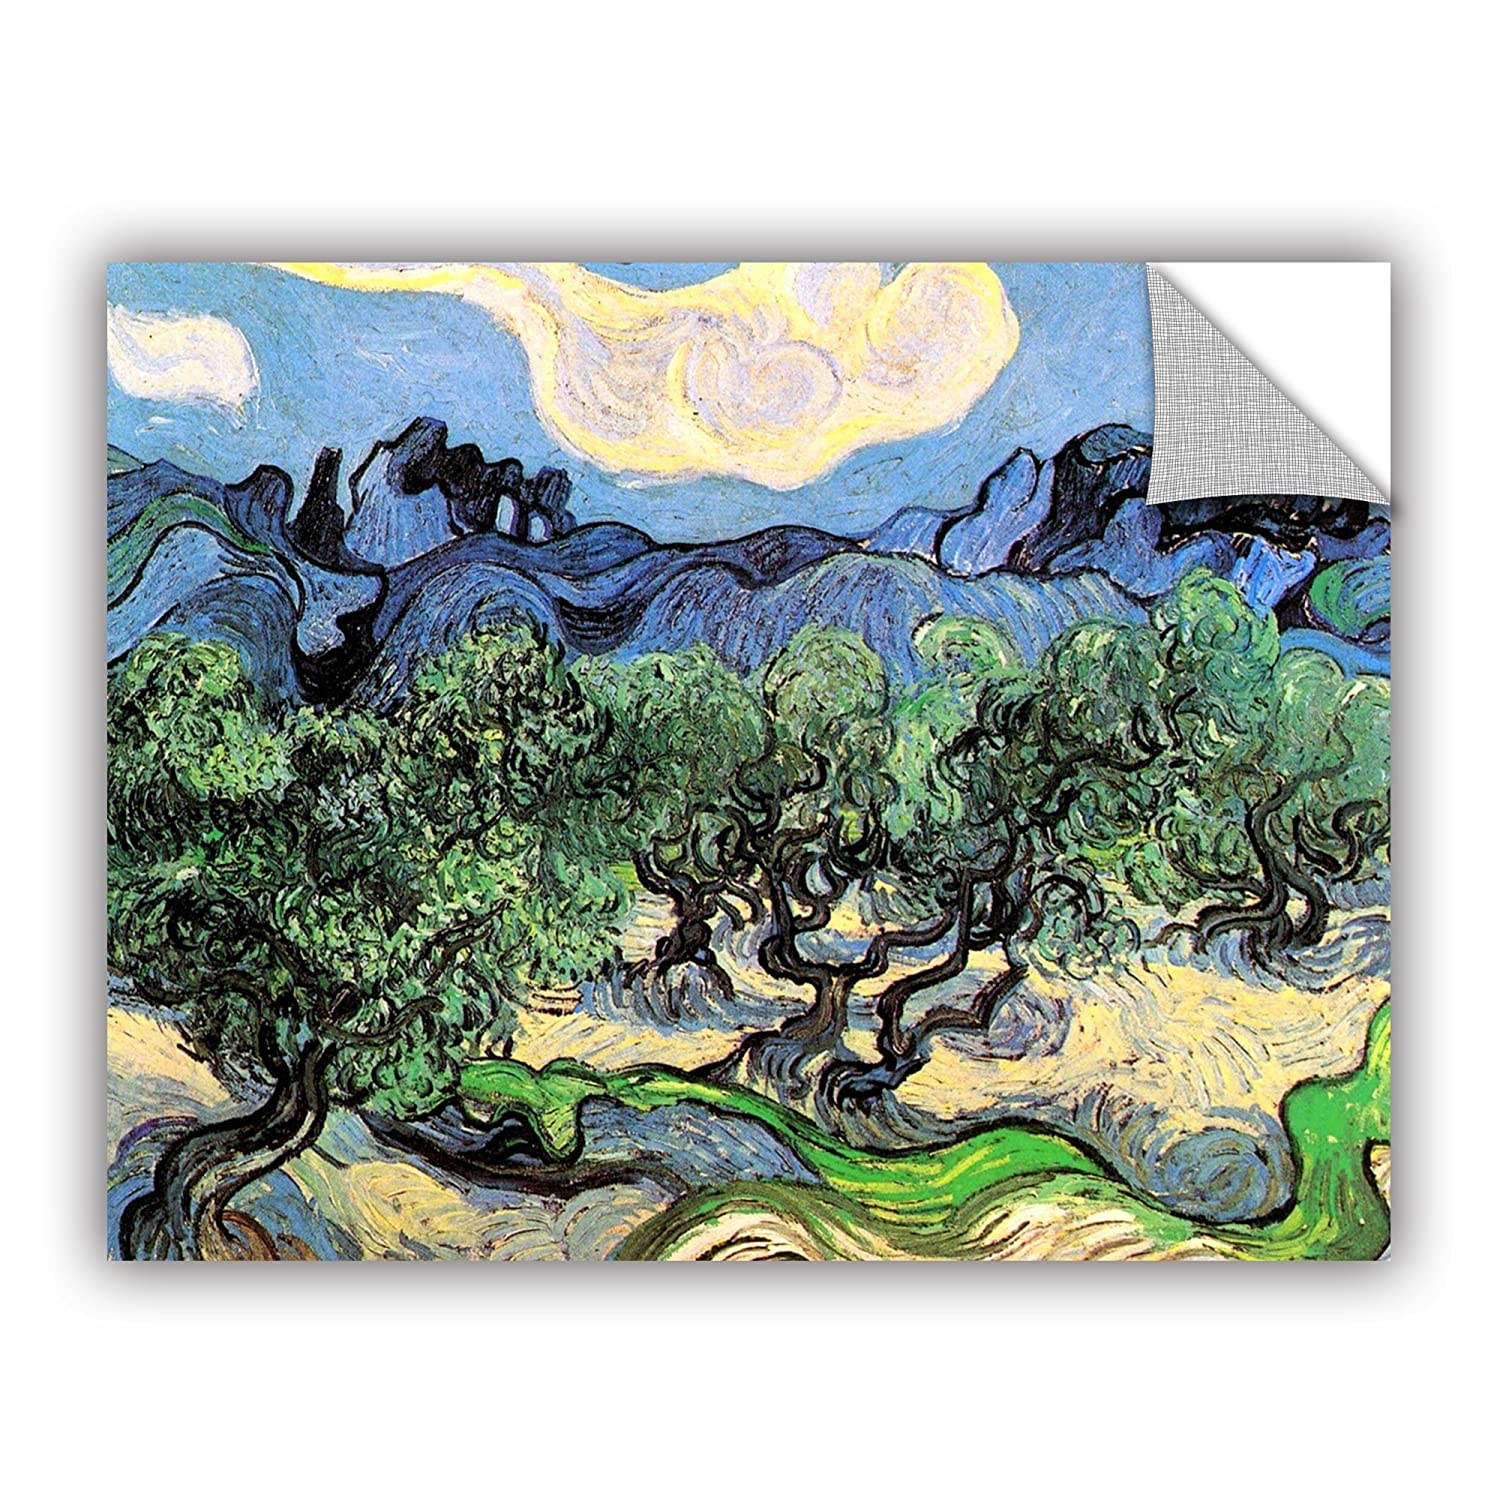 ArtWall Vincent Vangoghs Olive Tress in a Mountainous Landscape Art Appealz Removable Graphic Wall Art 18 by 24-Inch